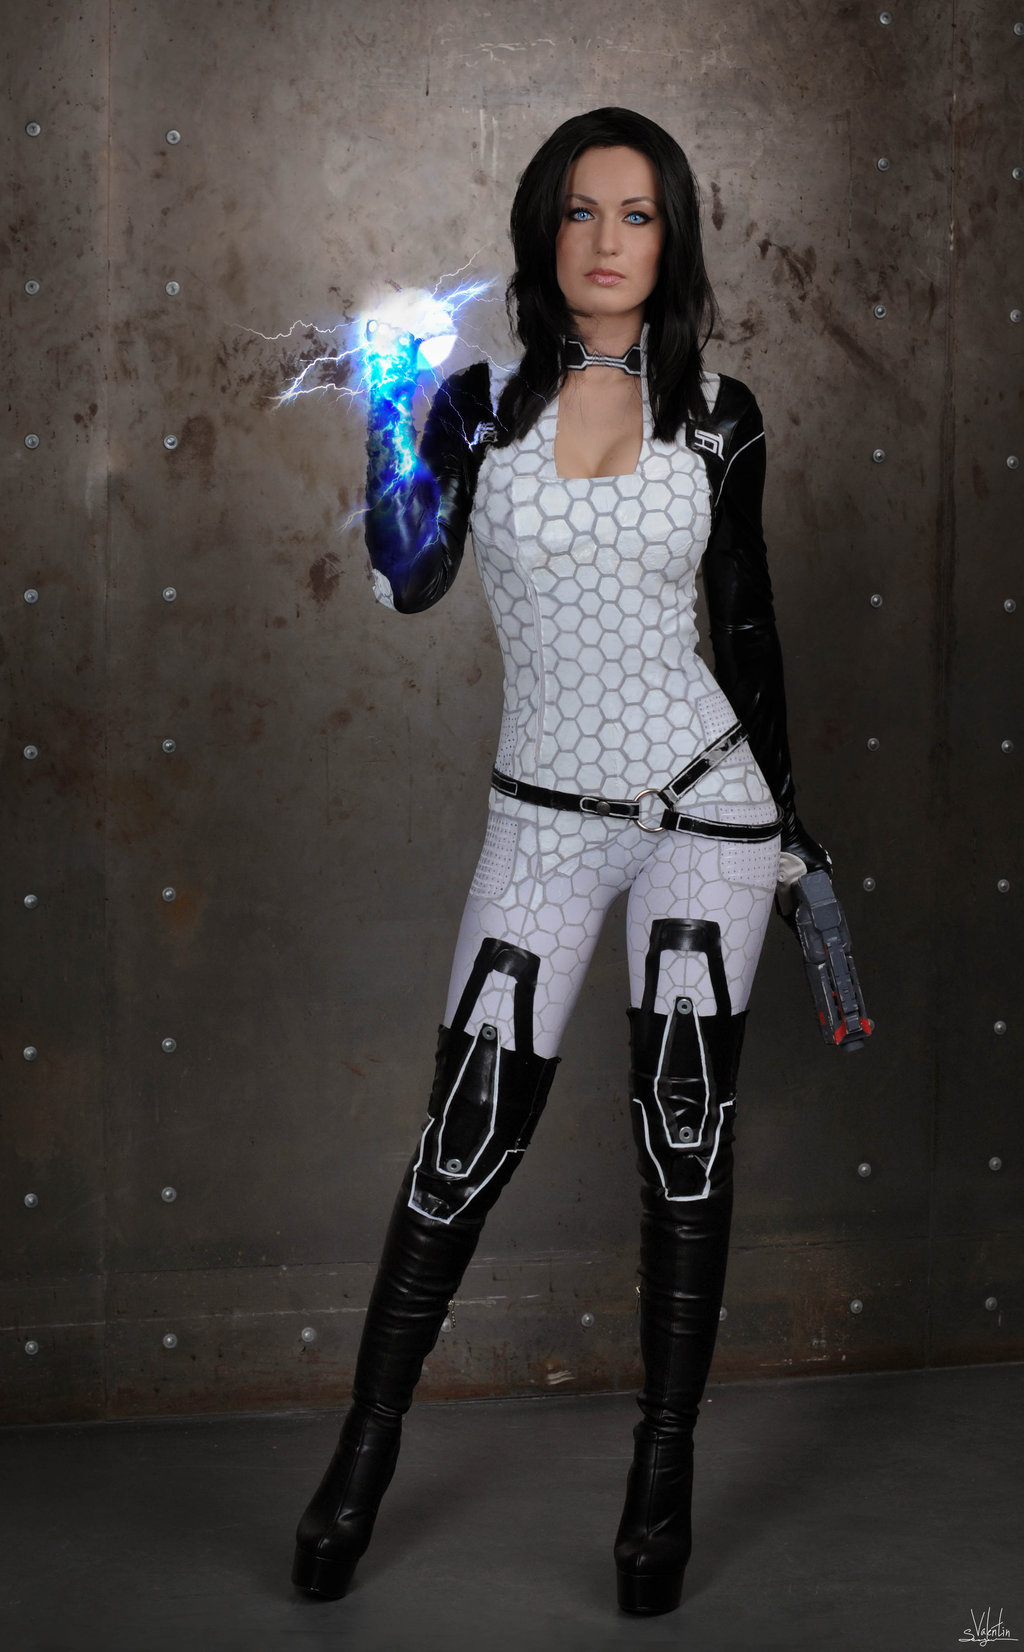 Miranda lawson cosplay costume